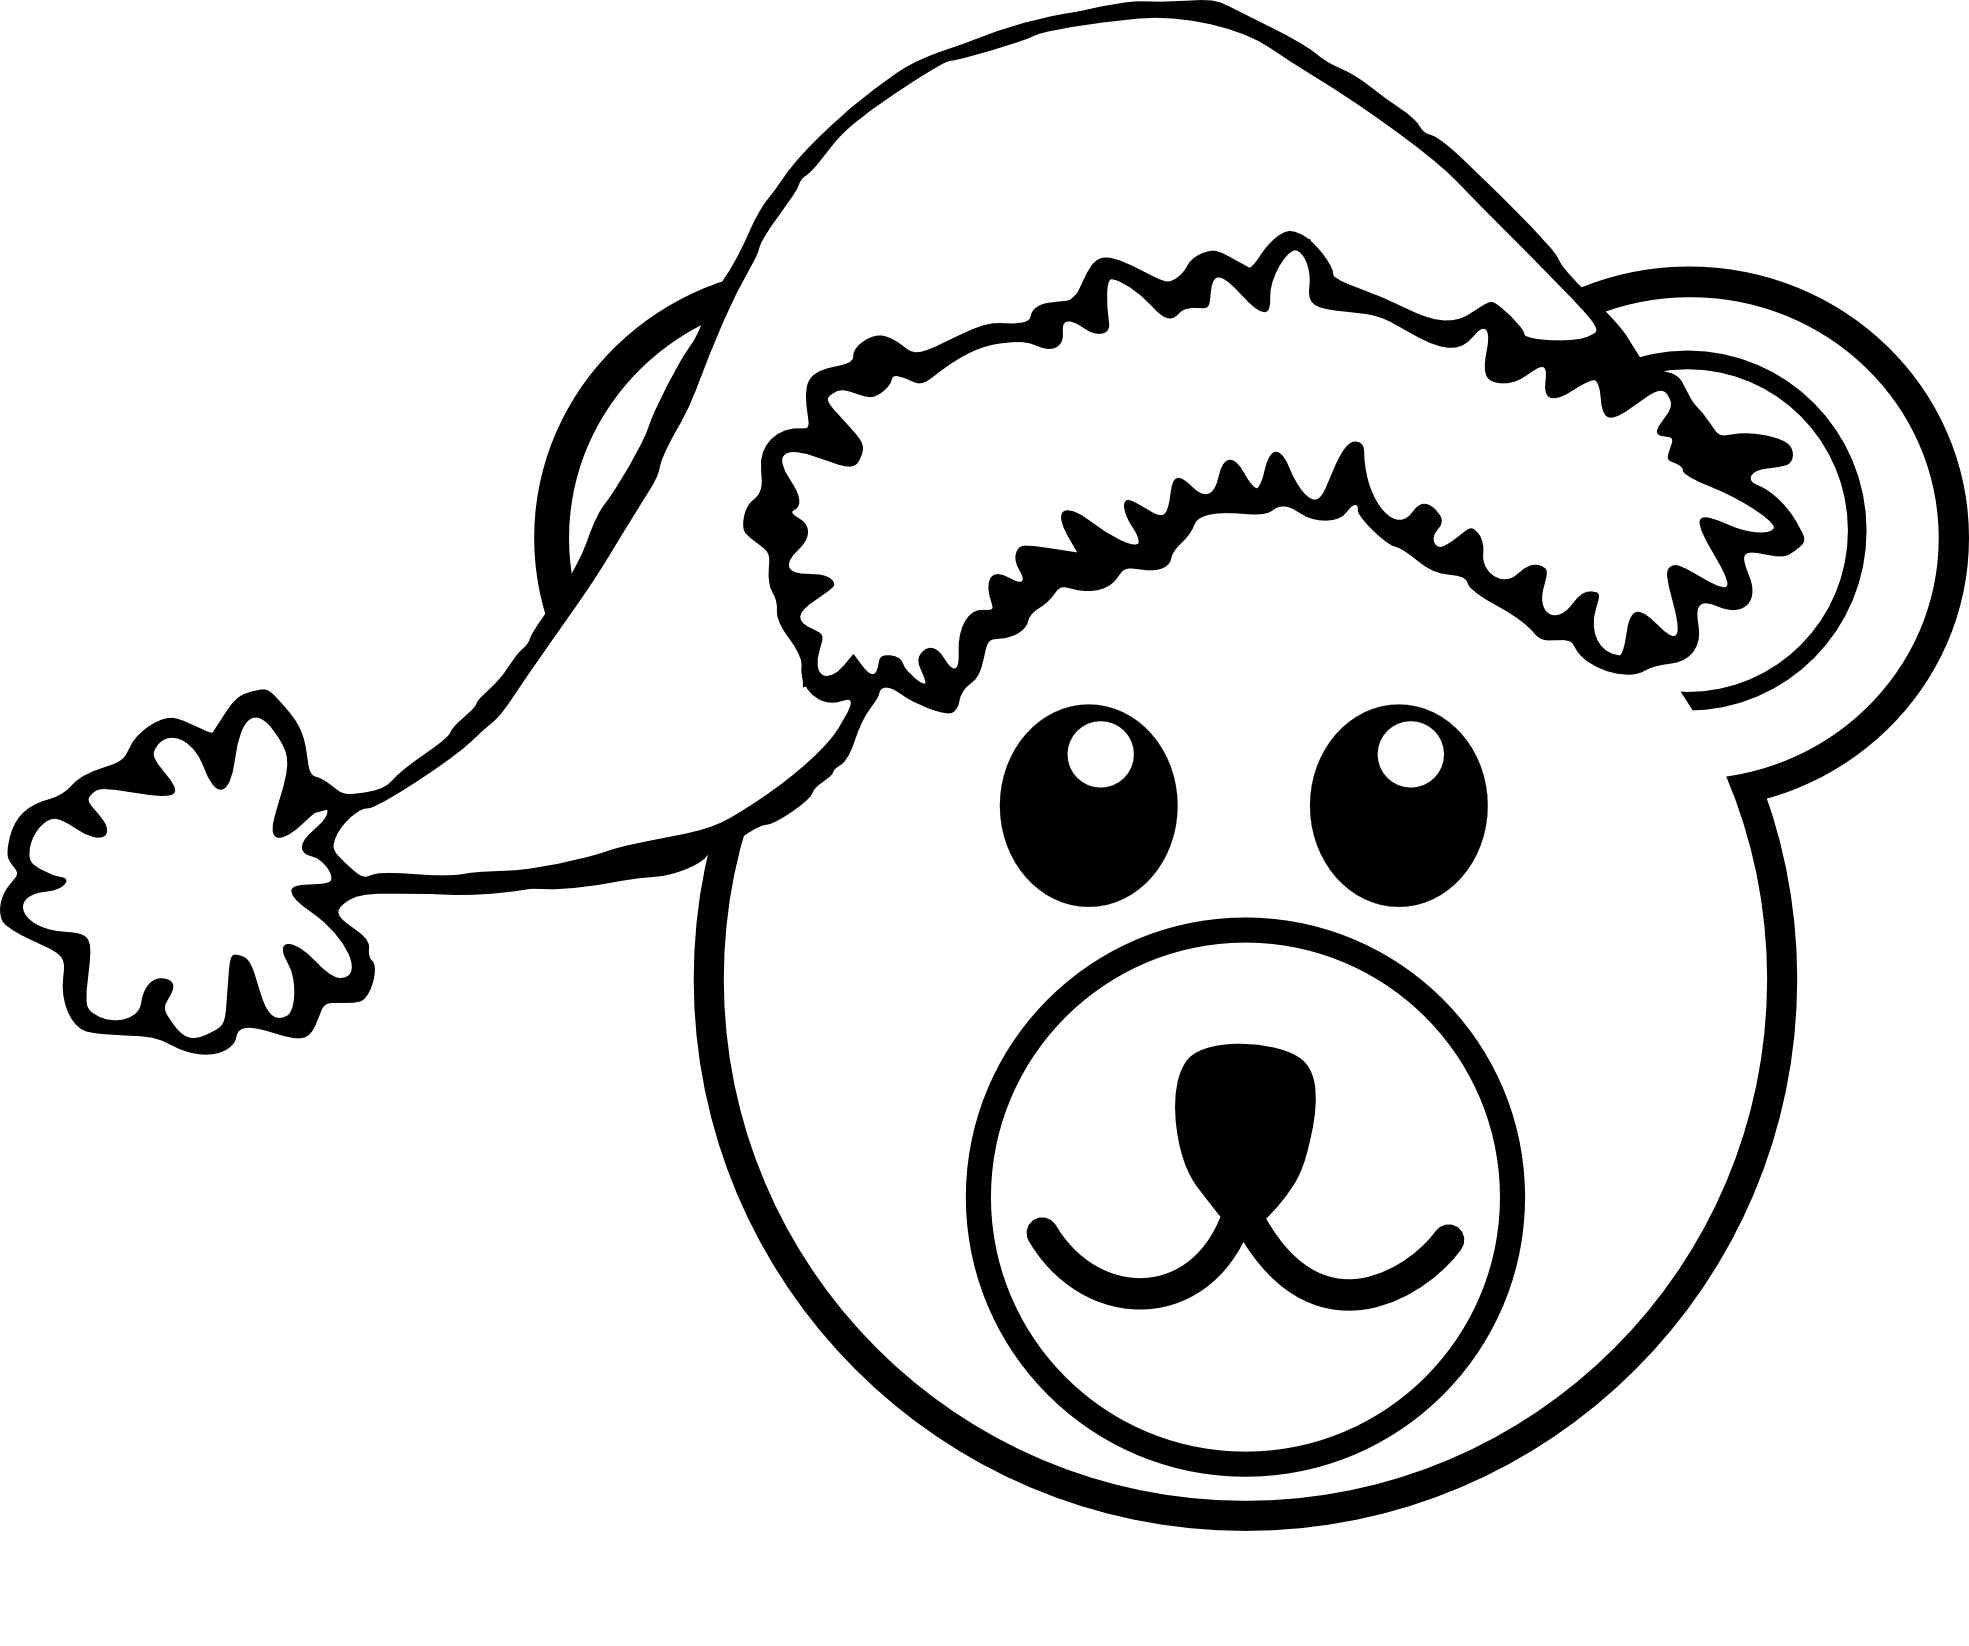 Bear 3 Head Brown With Santa Hat Black White Line Art Teddy Bear Xmas